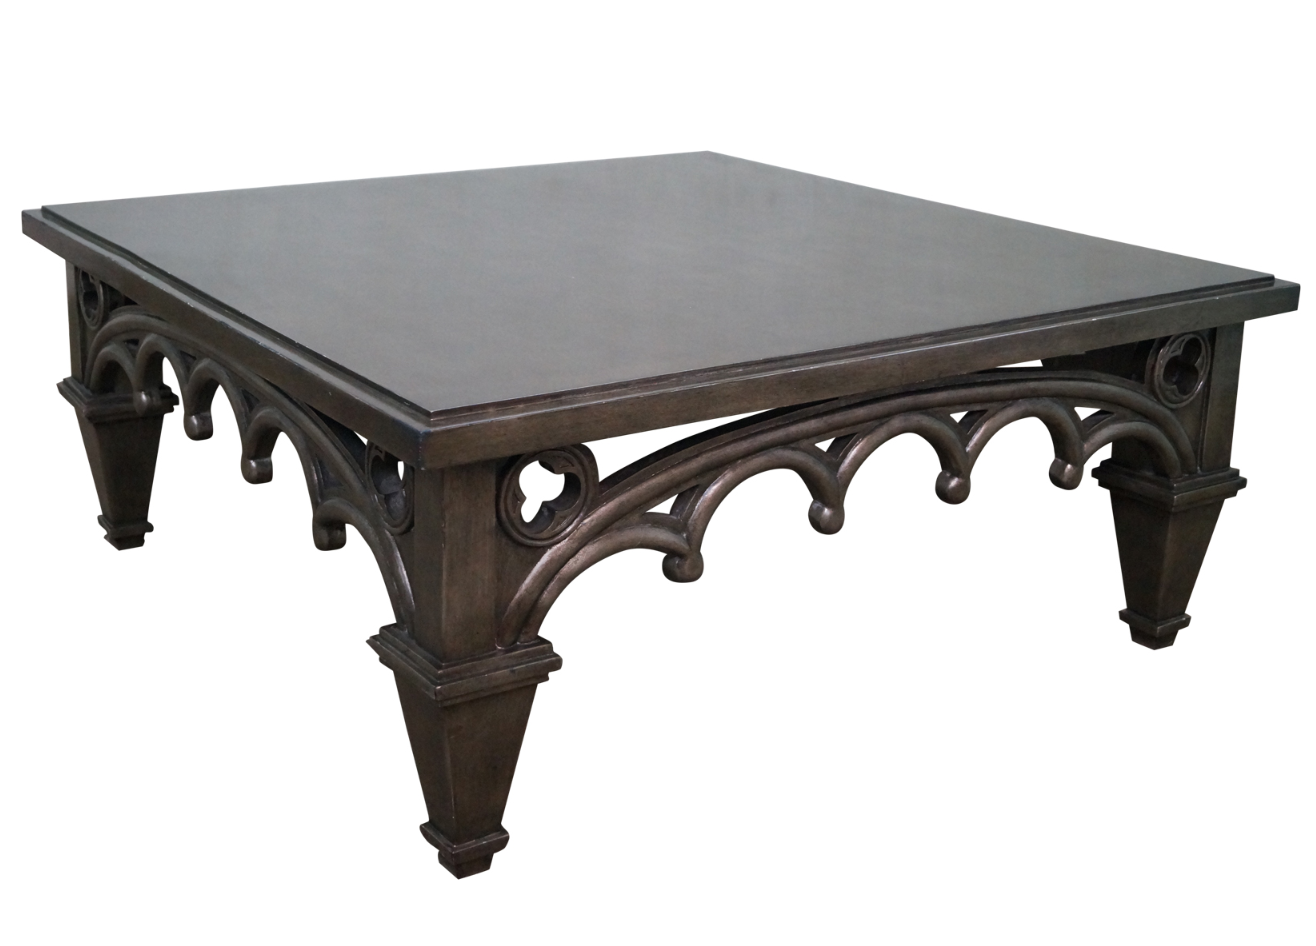 Astounding 595 Gothic Style Painted Coffee Table 40 0W 40 0D Download Free Architecture Designs Xerocsunscenecom